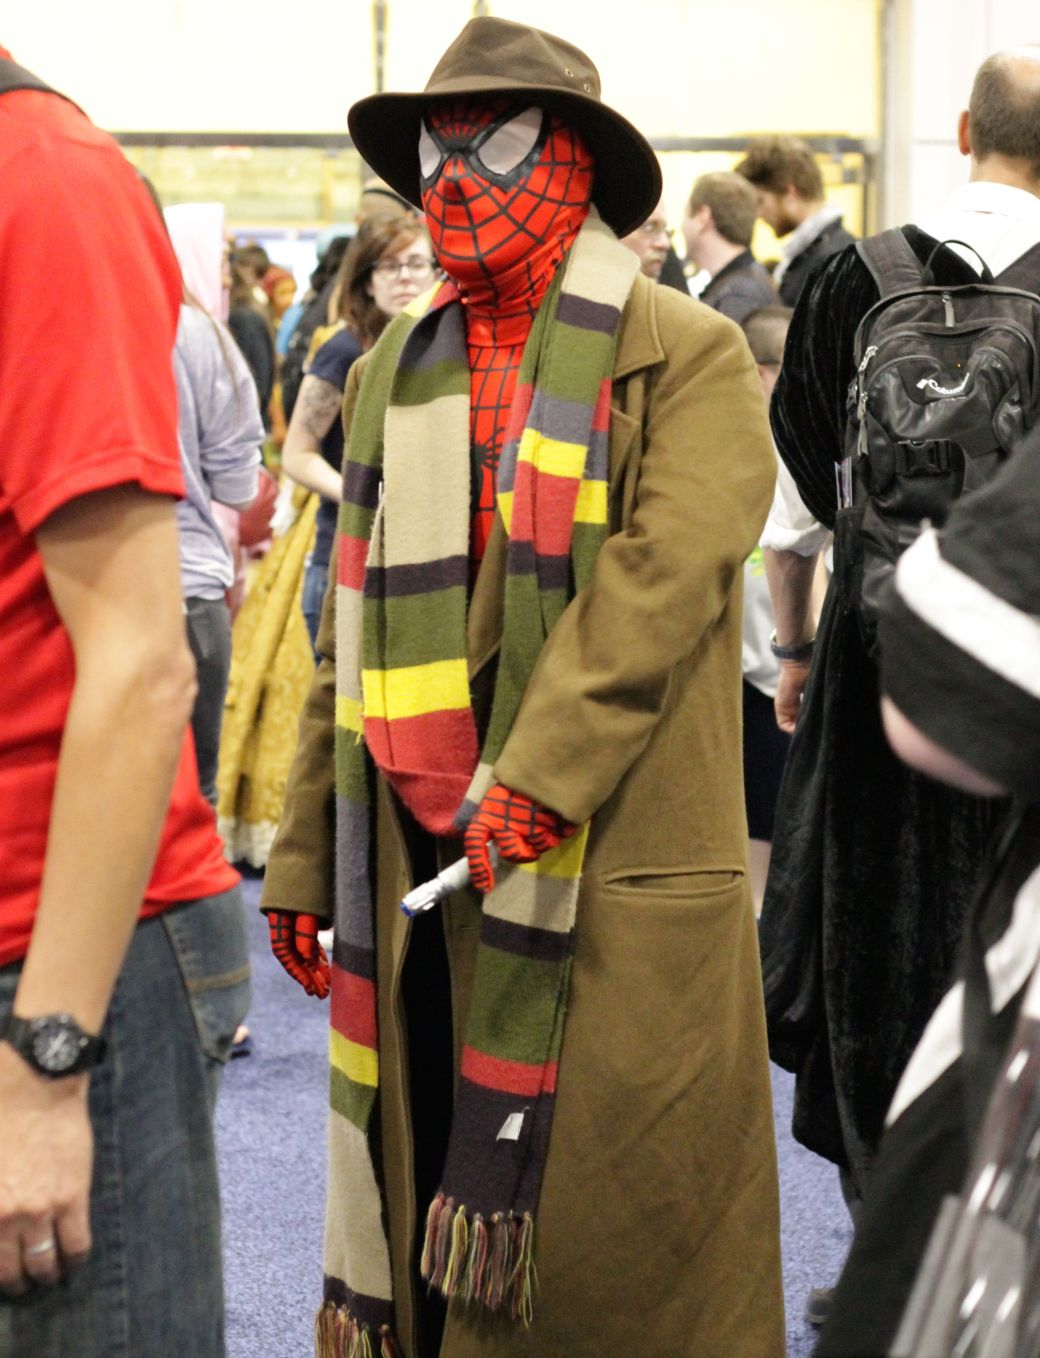 boston comic con august 8 costumes 31